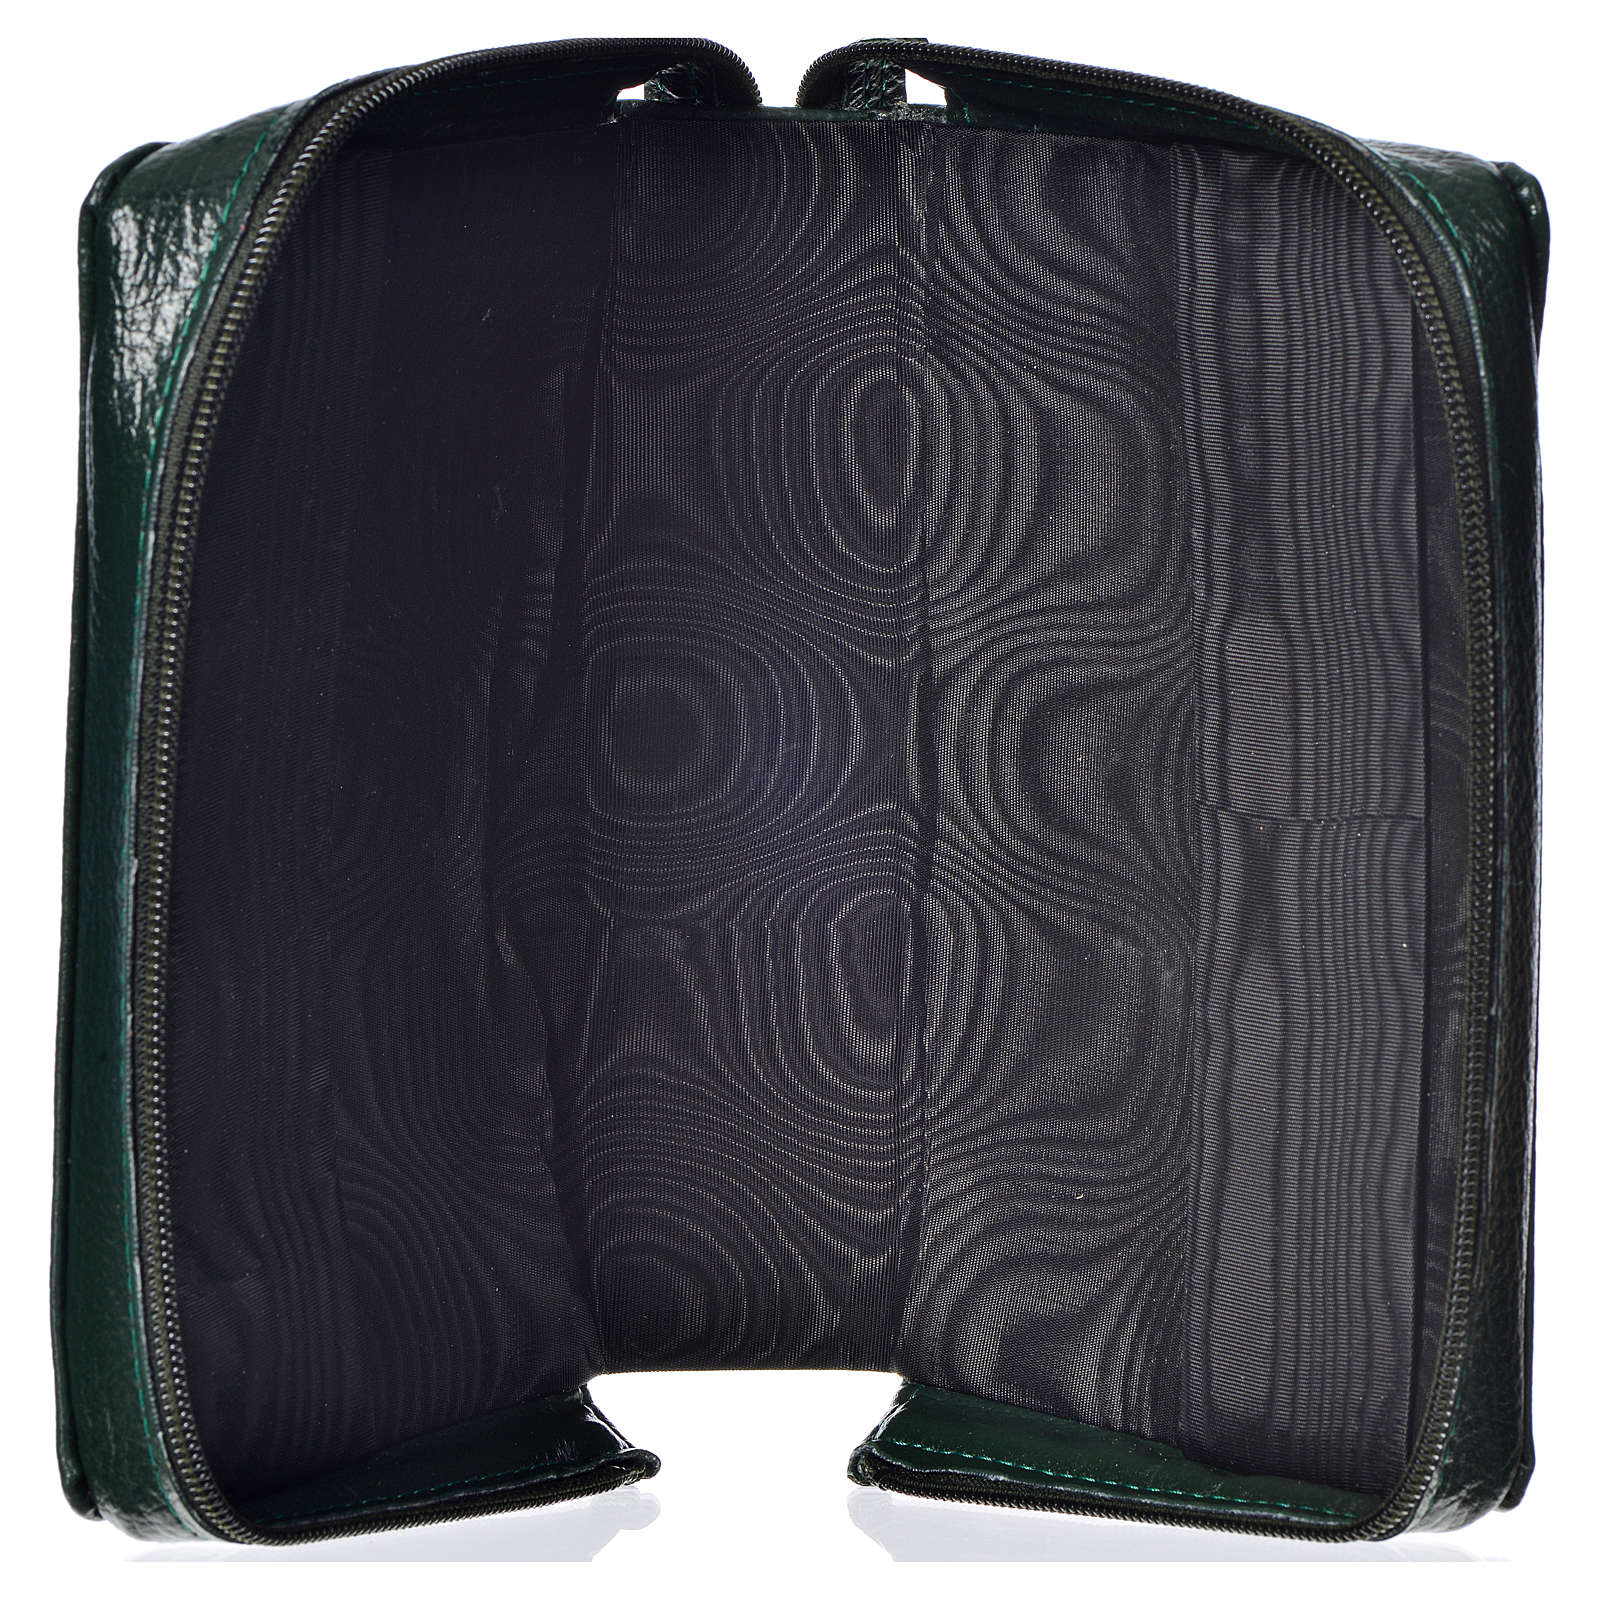 Divine office cover, green bonded leather Divine Mercy 4